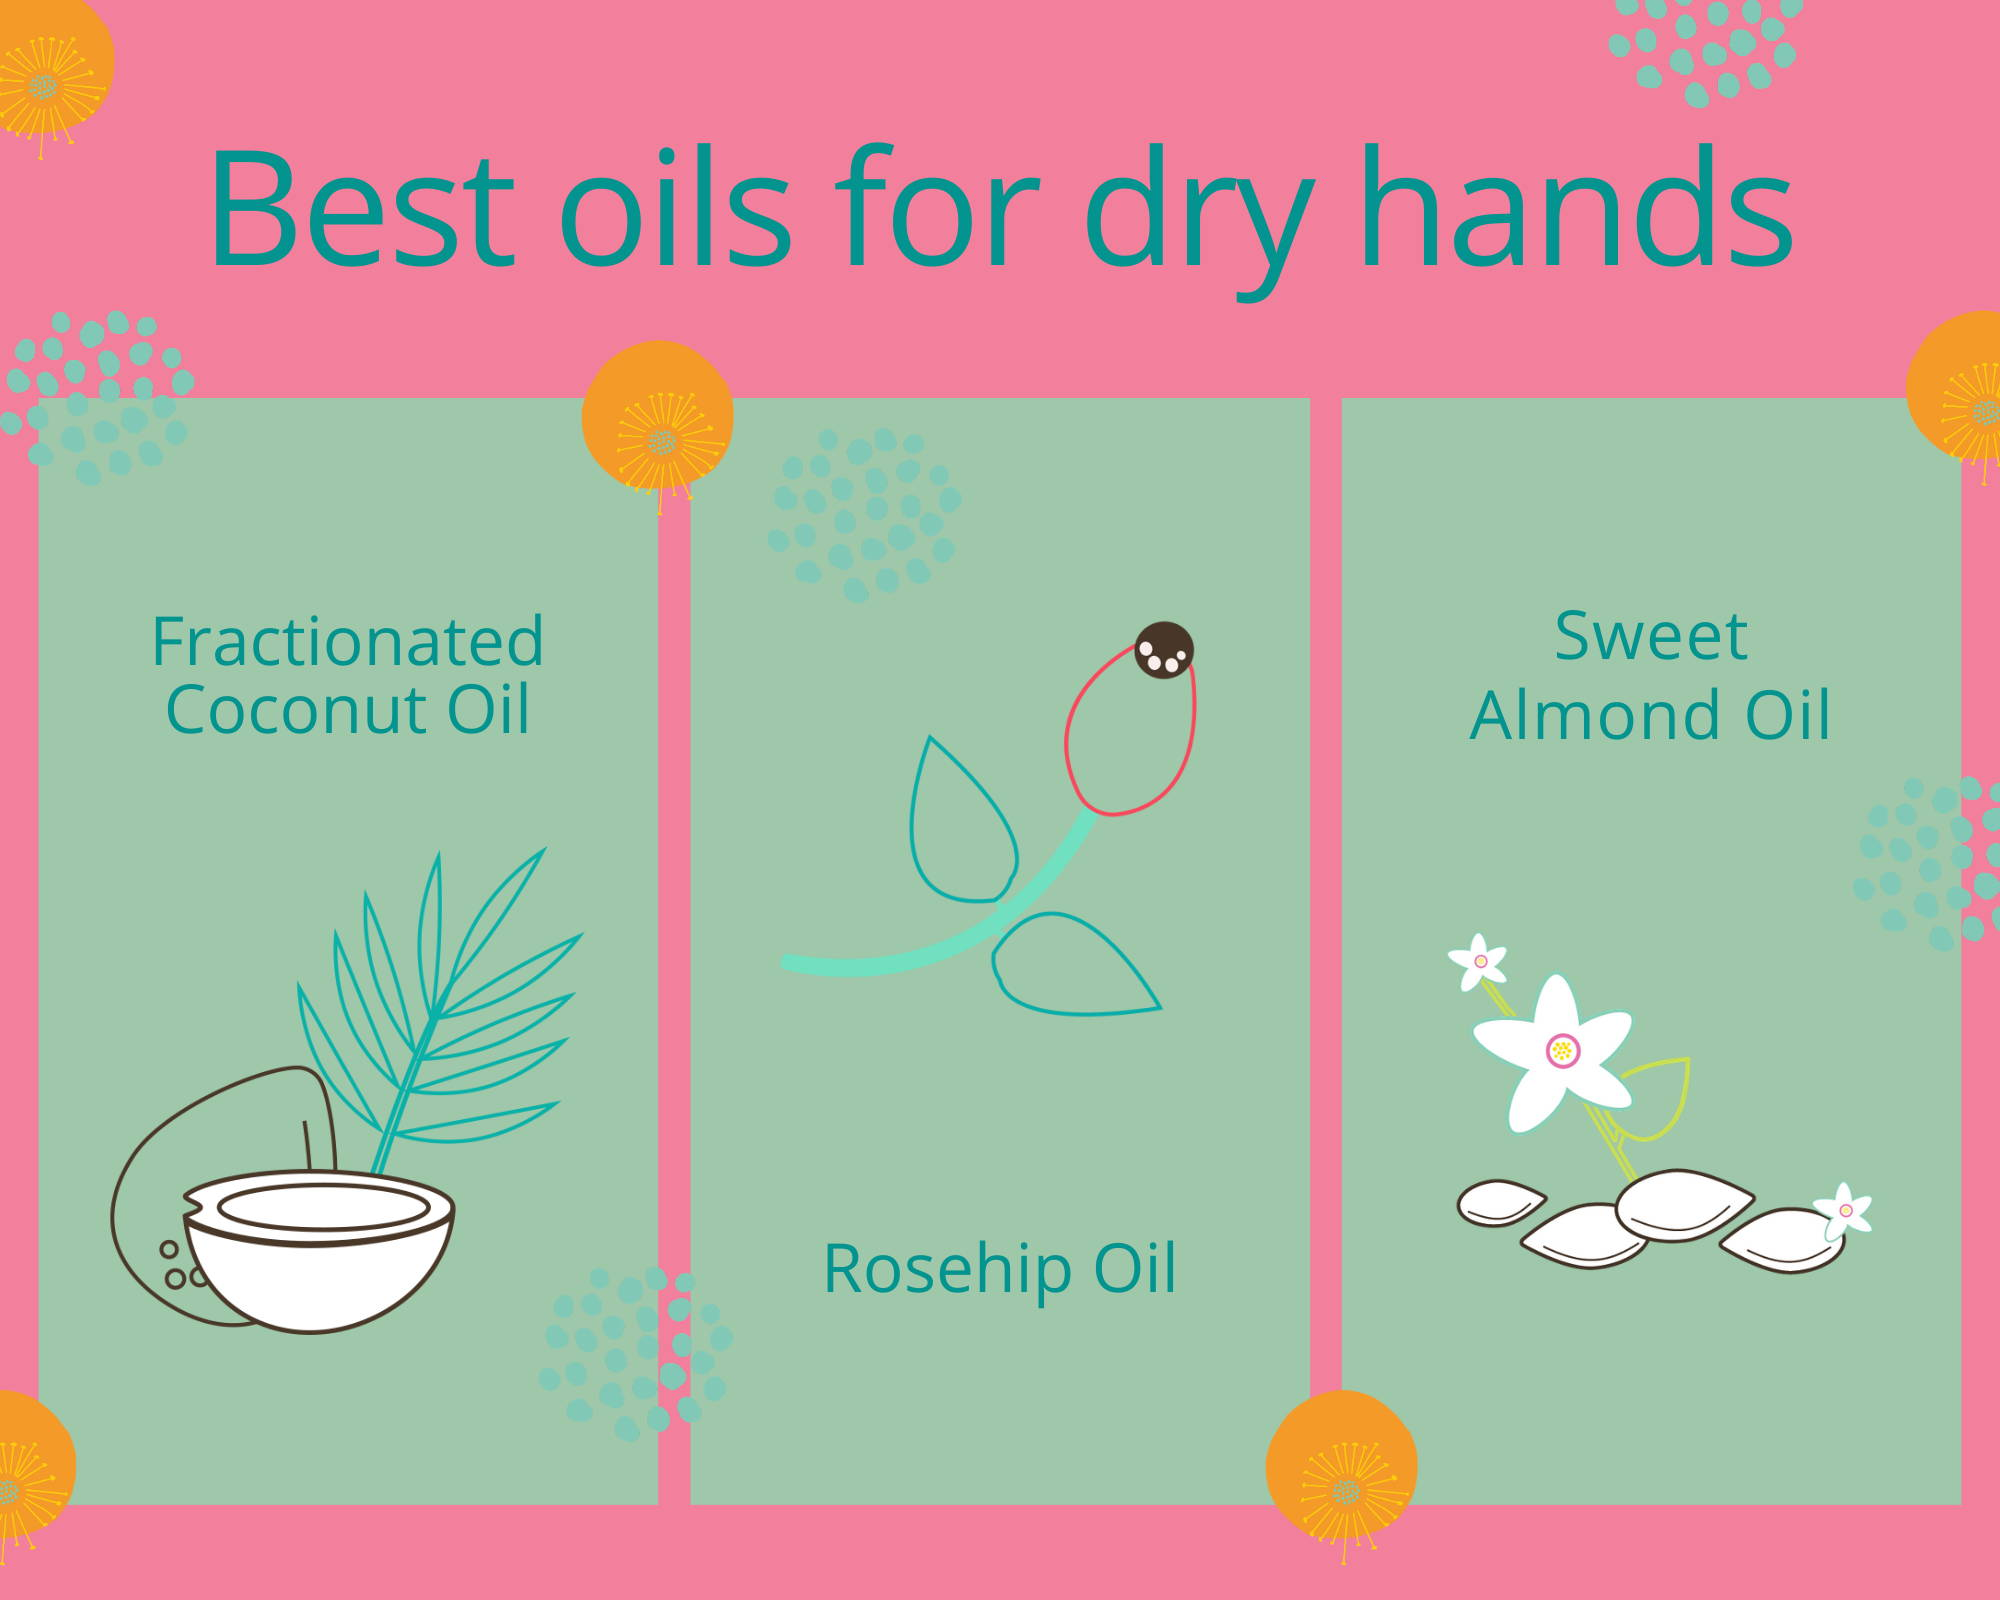 Best oils for dry hands